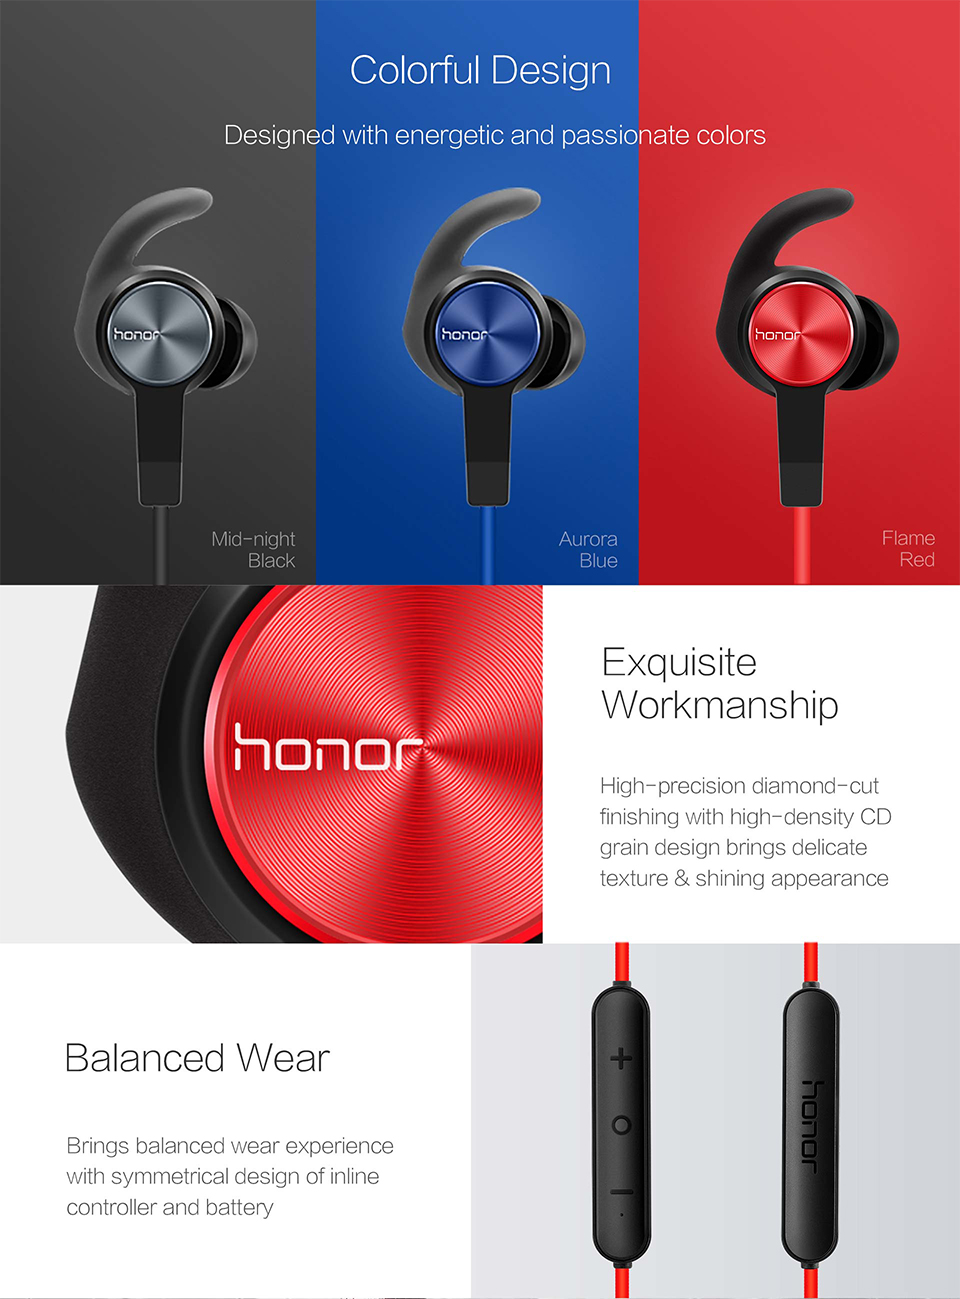 Huawei Honor xSport Bluetooth Headset AM61 IPX5 Waterproof BT4.1 Music Mic Control Wireless Earphones for Android IOS D5 (2)